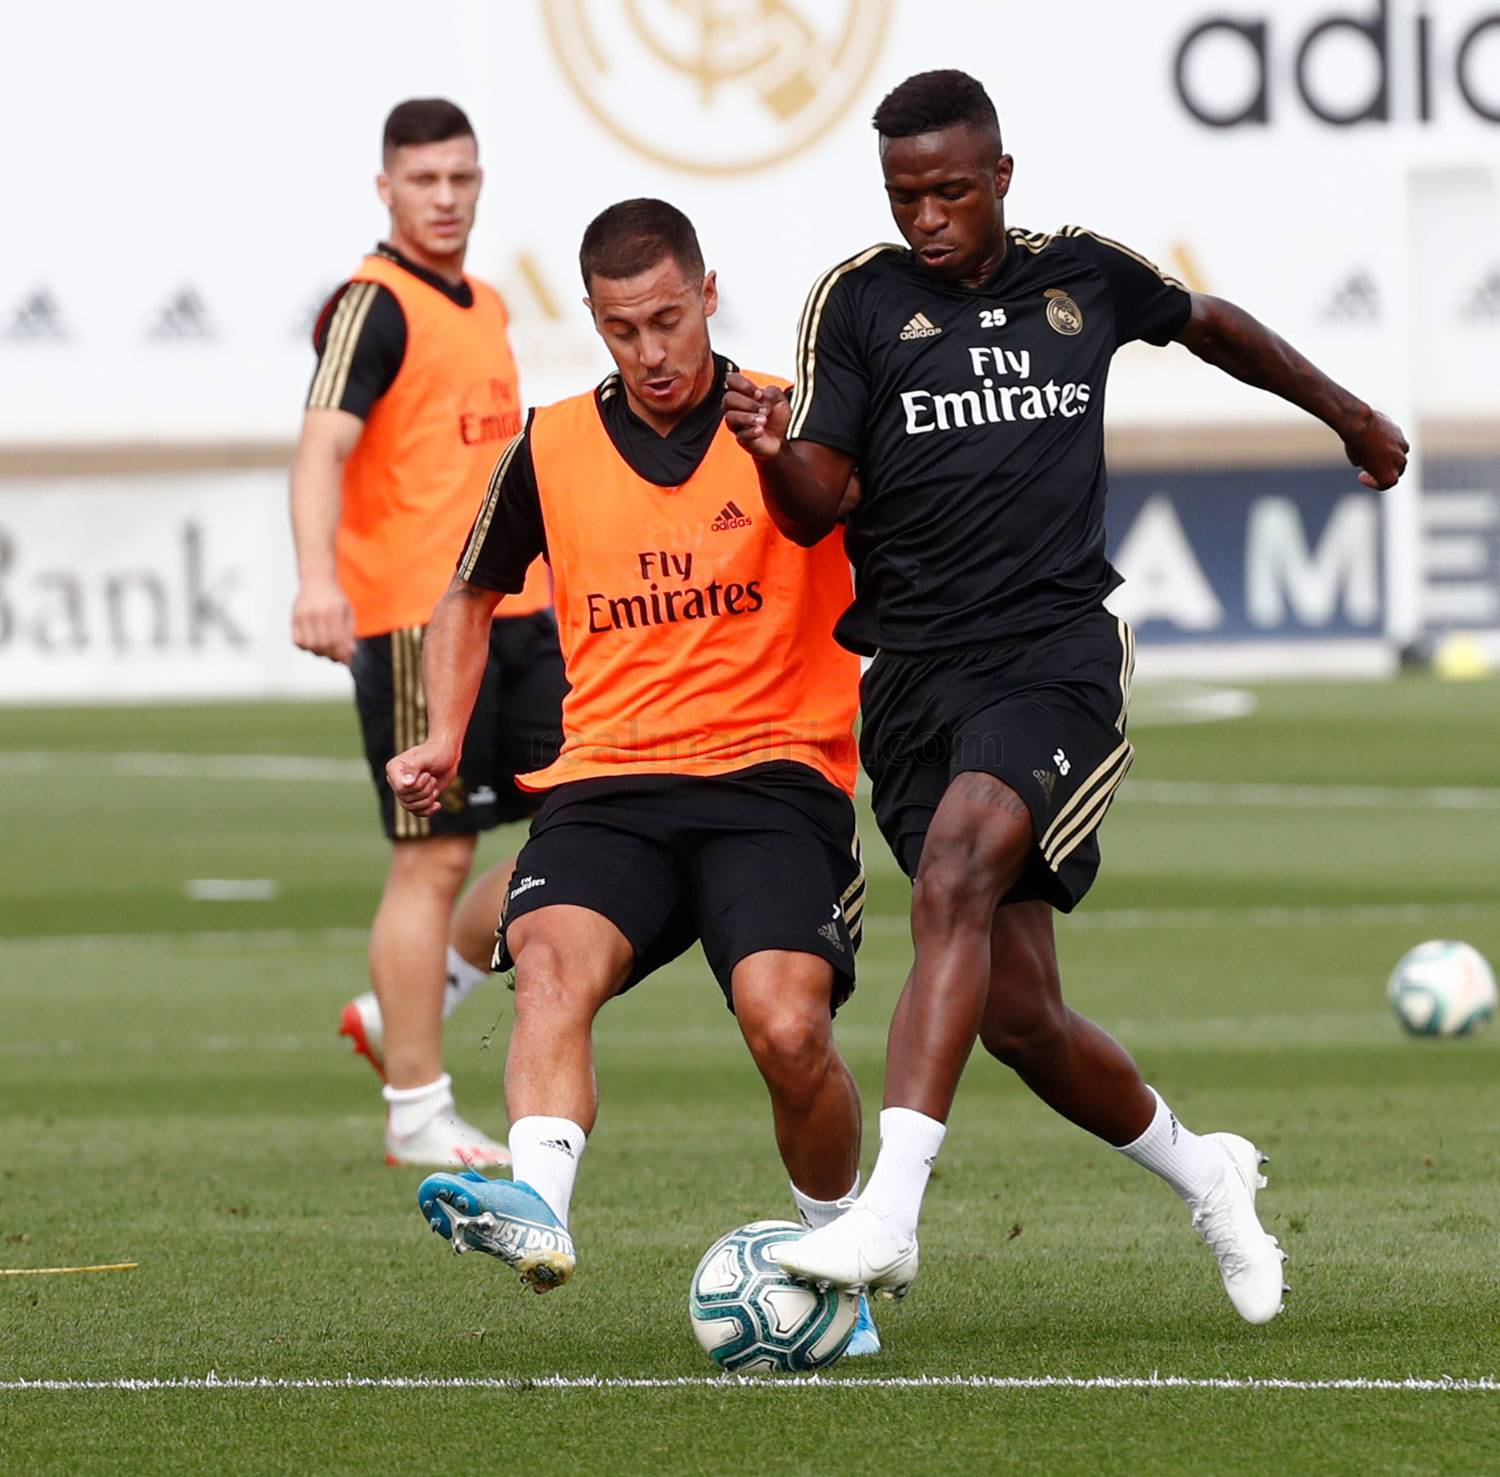 Real Madrid - Entrenamiento del Real Madrid  - 20-09-2019